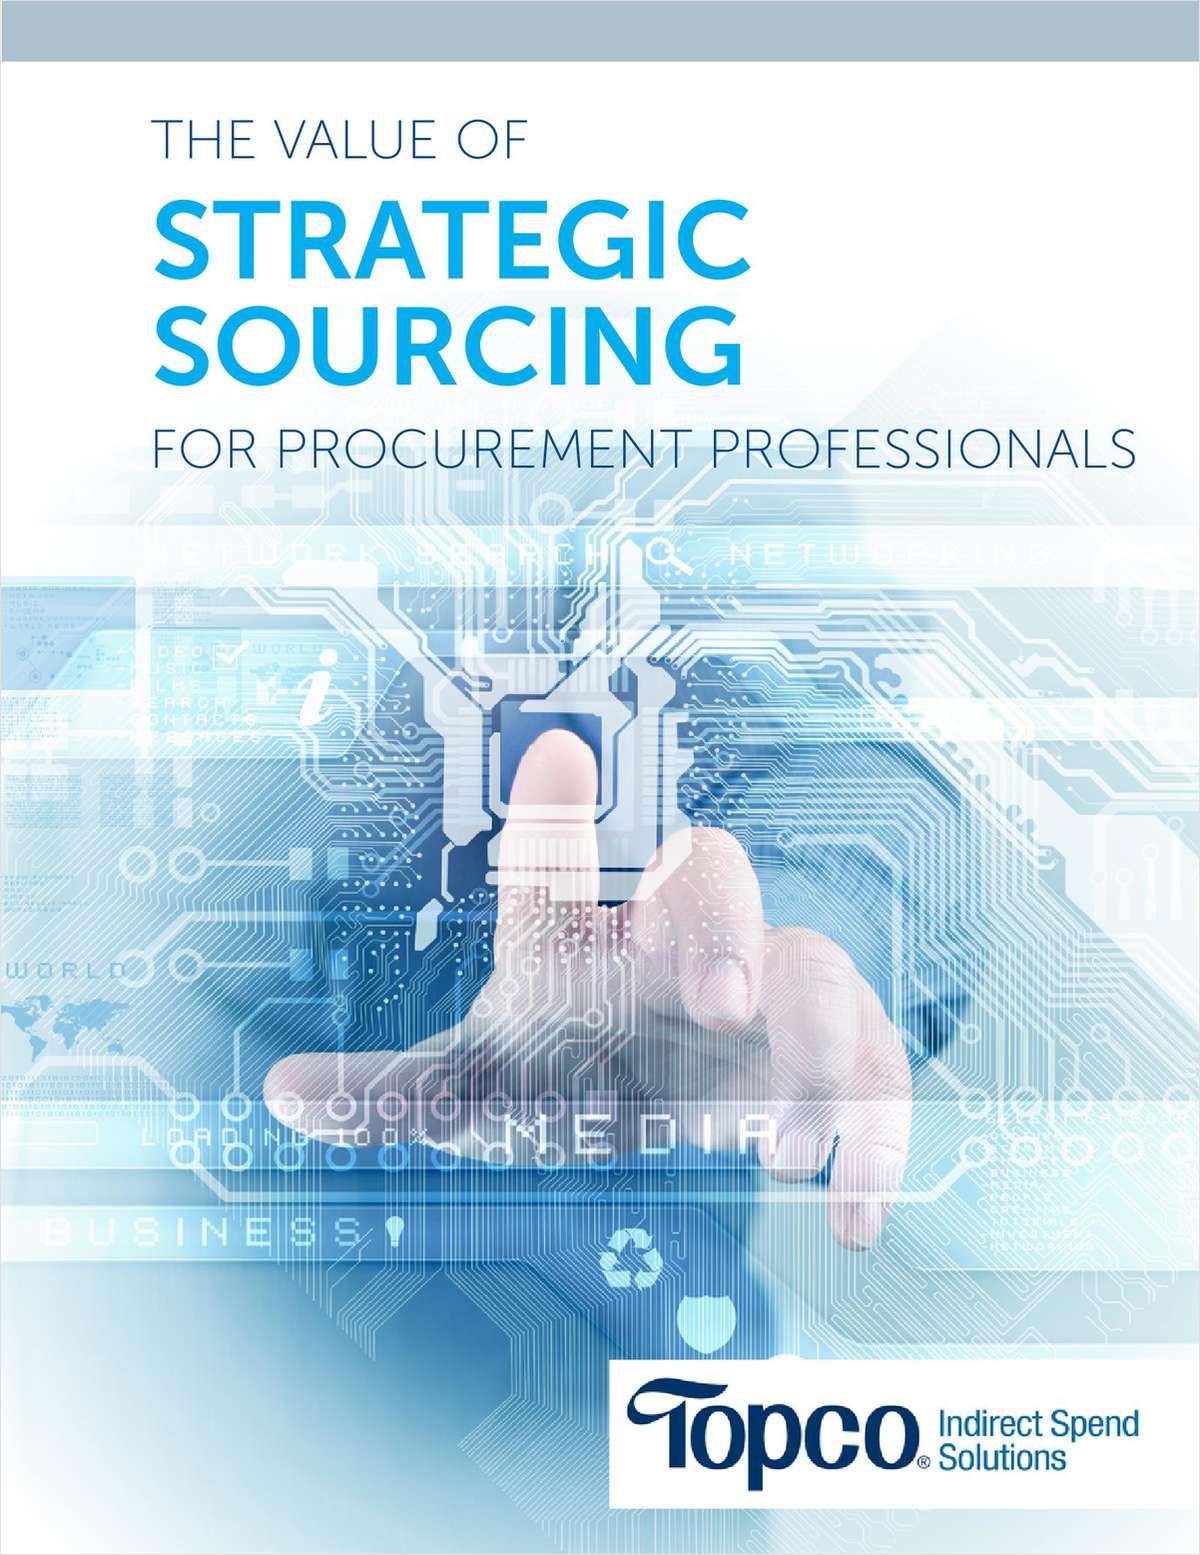 The Value of Strategic Sourcing for Procurement Professionals